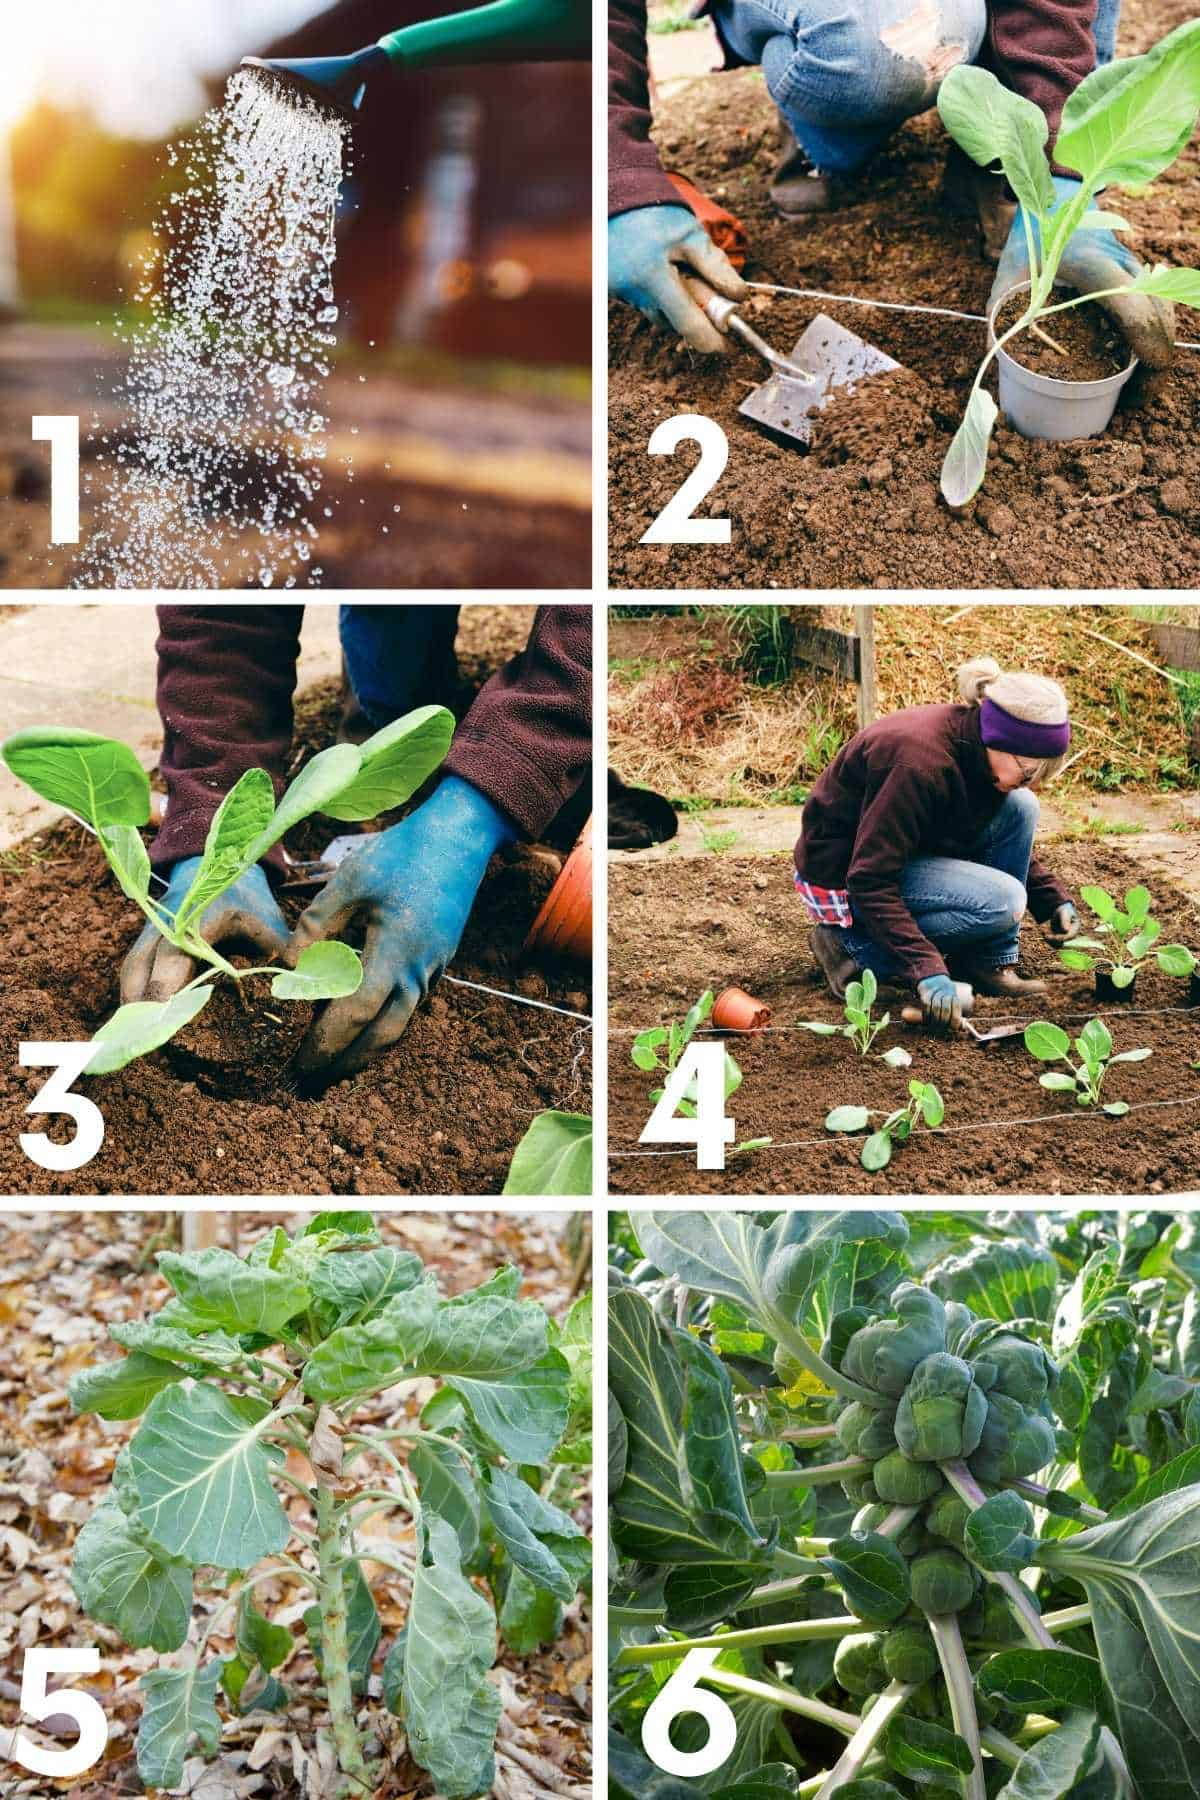 Numbered image showing how to plant Brussels sprouts seedlings step by step